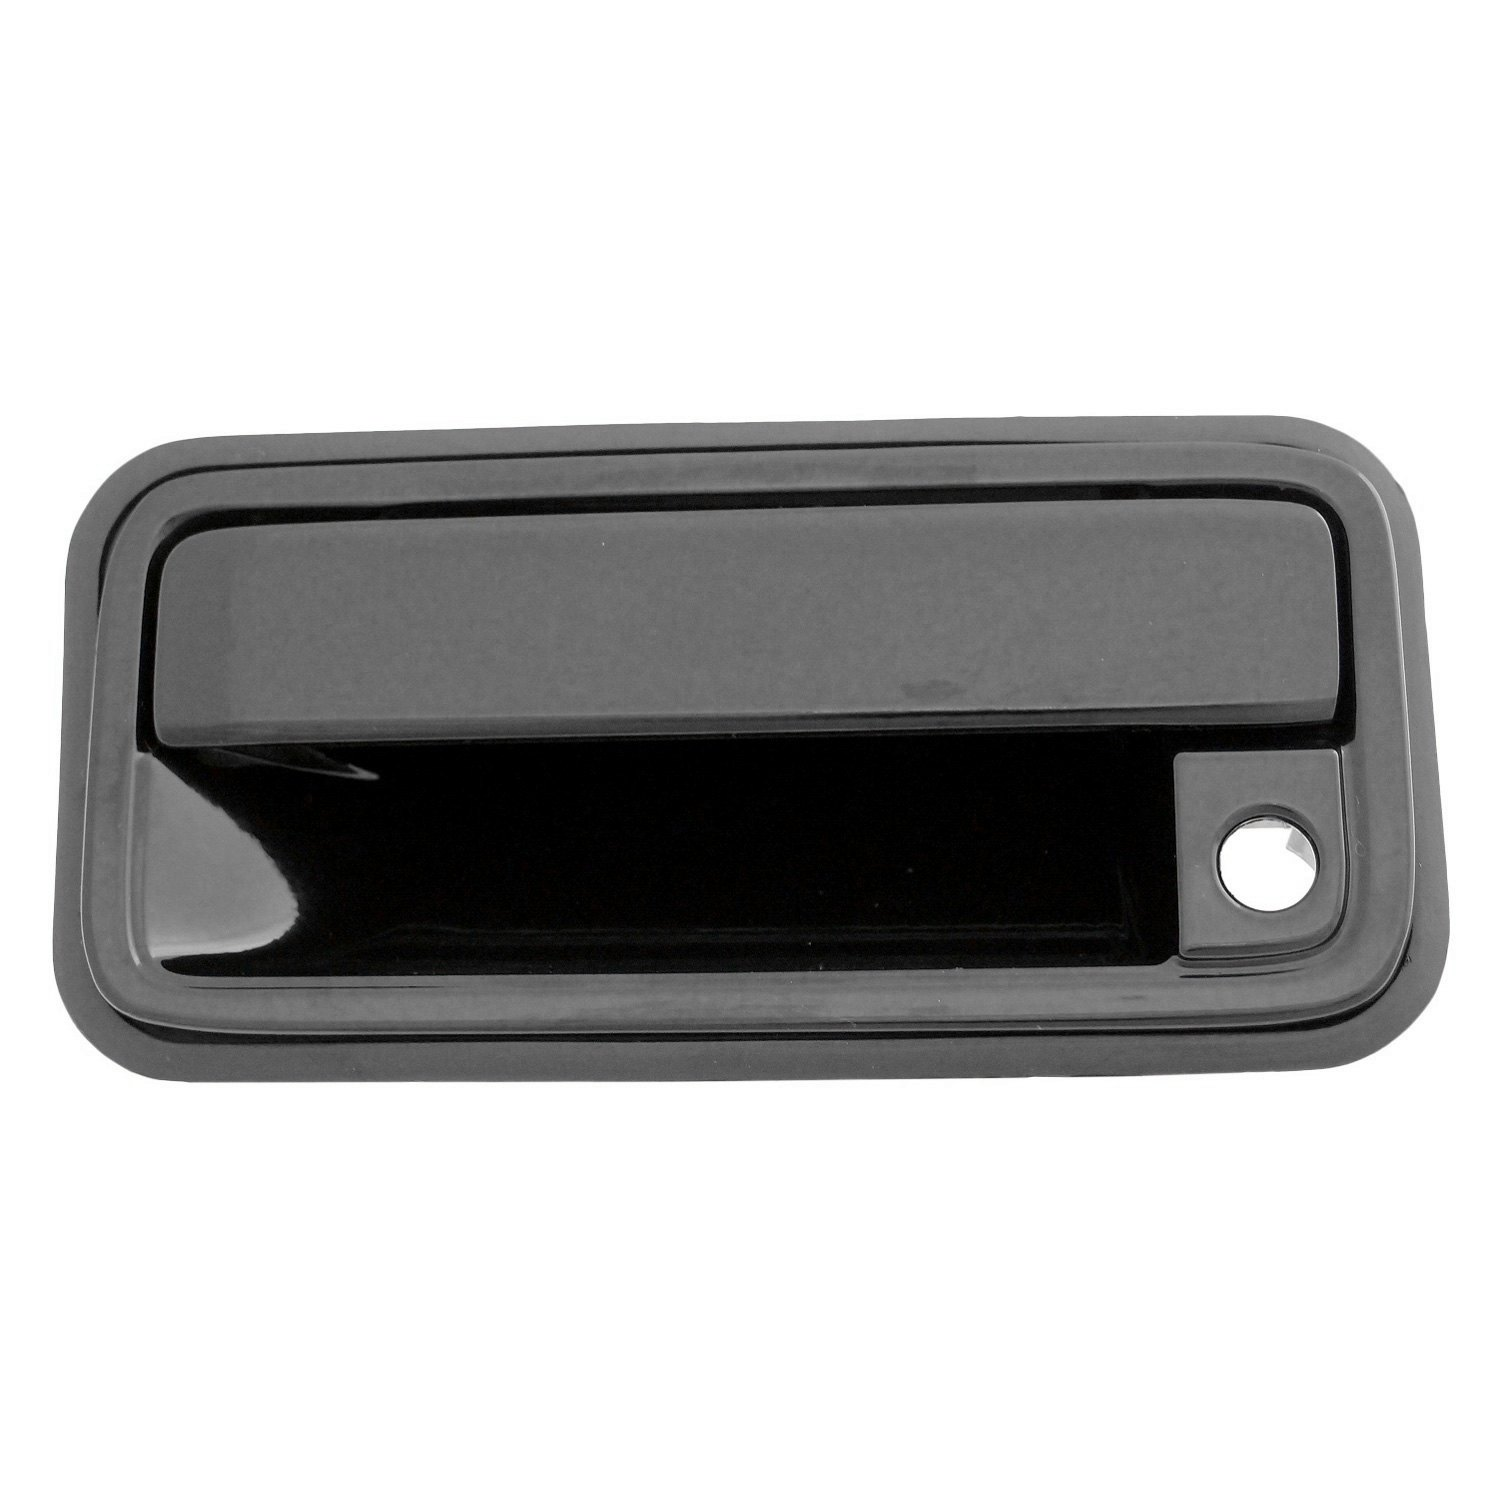 Service Manual 1999 Cadillac Escalade Outer Door Handle Replacement Replace 174 Chevy Tahoe